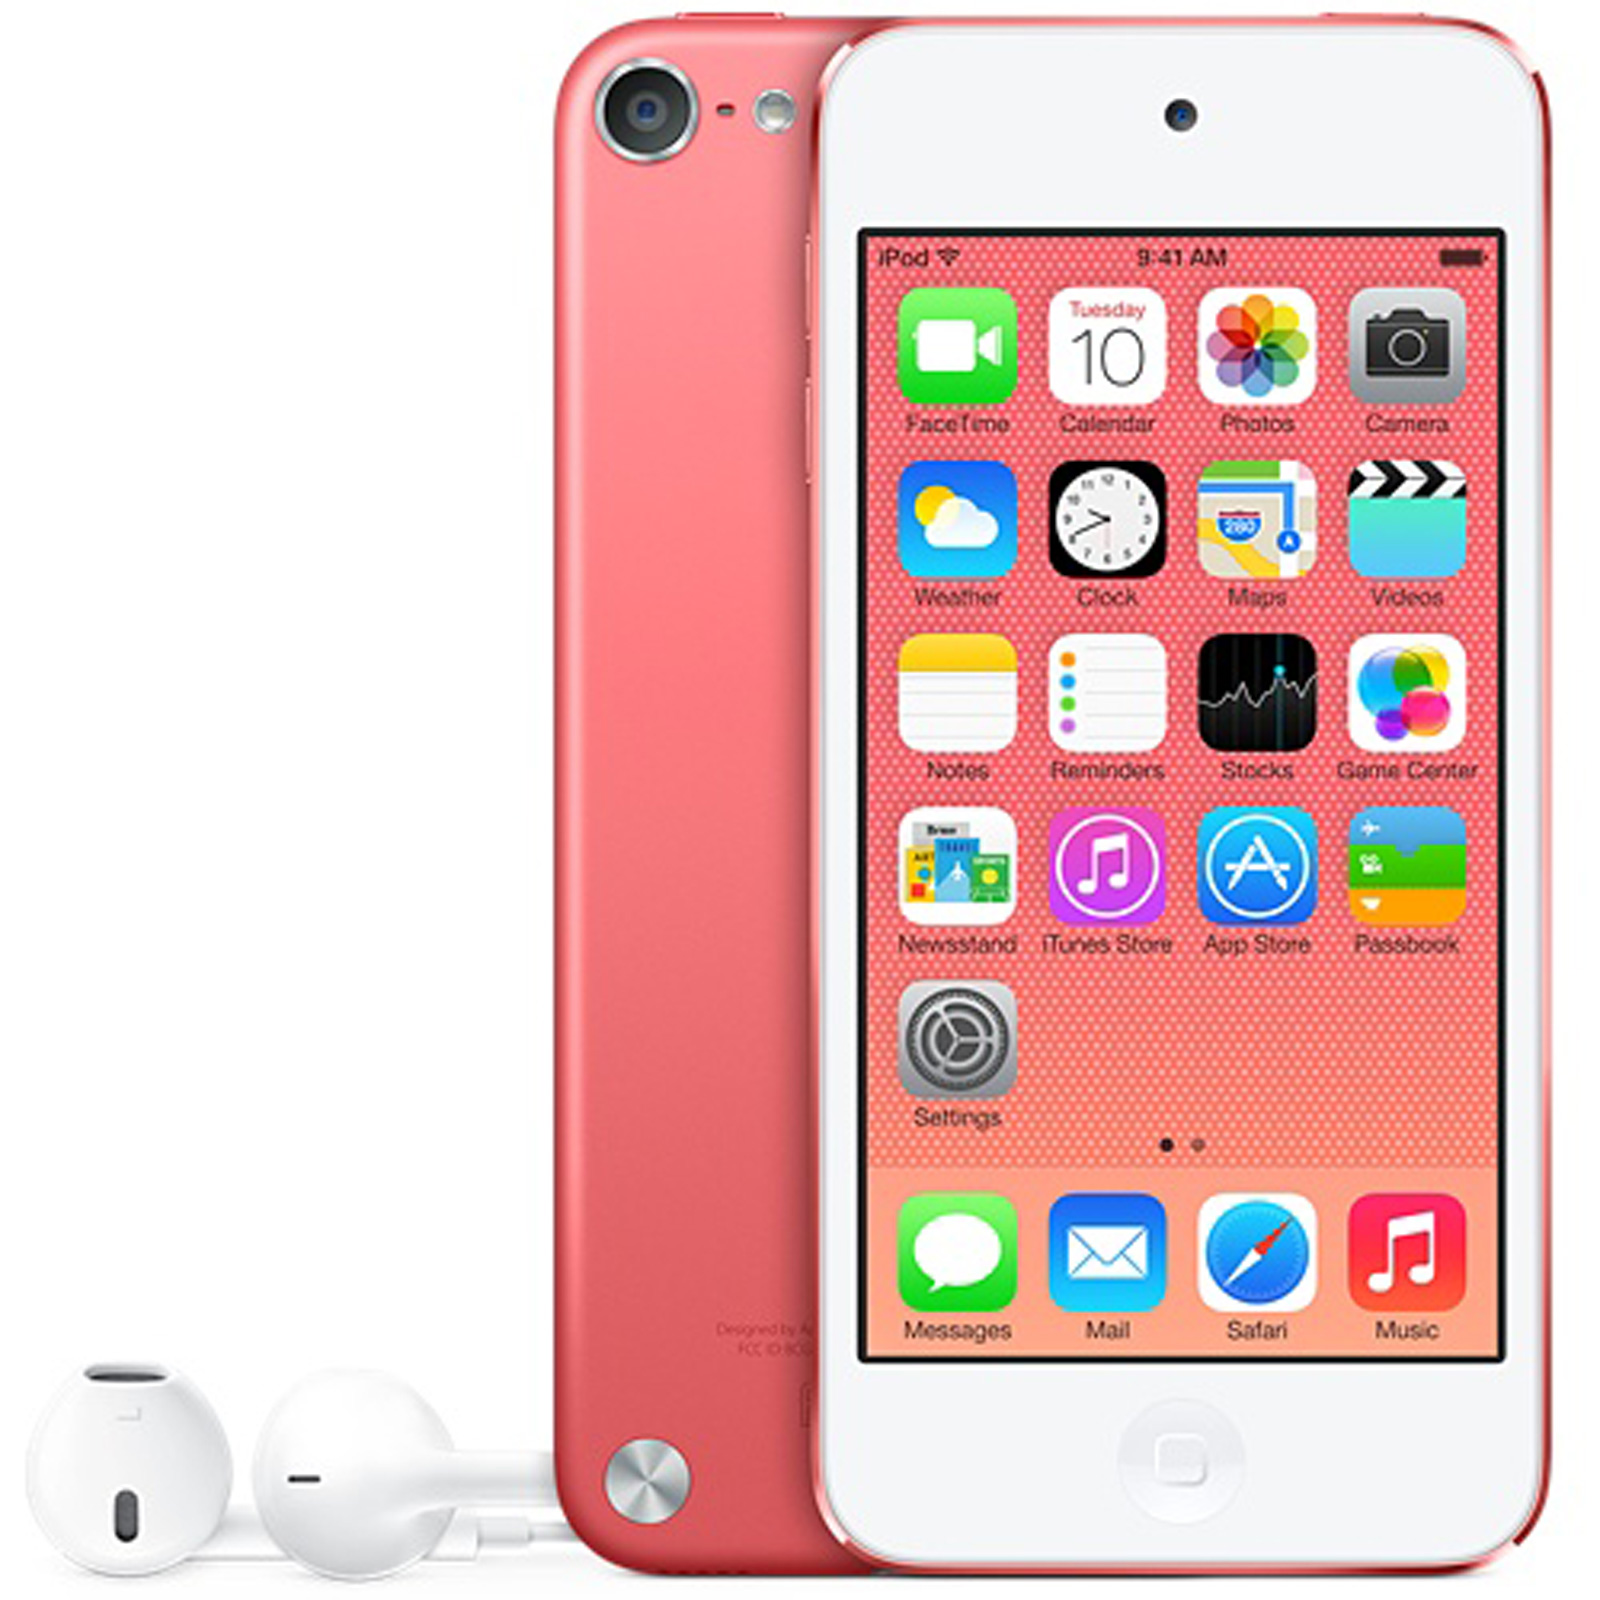 apple ipod touch 16 go rose lecteur mp3 ipod apple sur. Black Bedroom Furniture Sets. Home Design Ideas